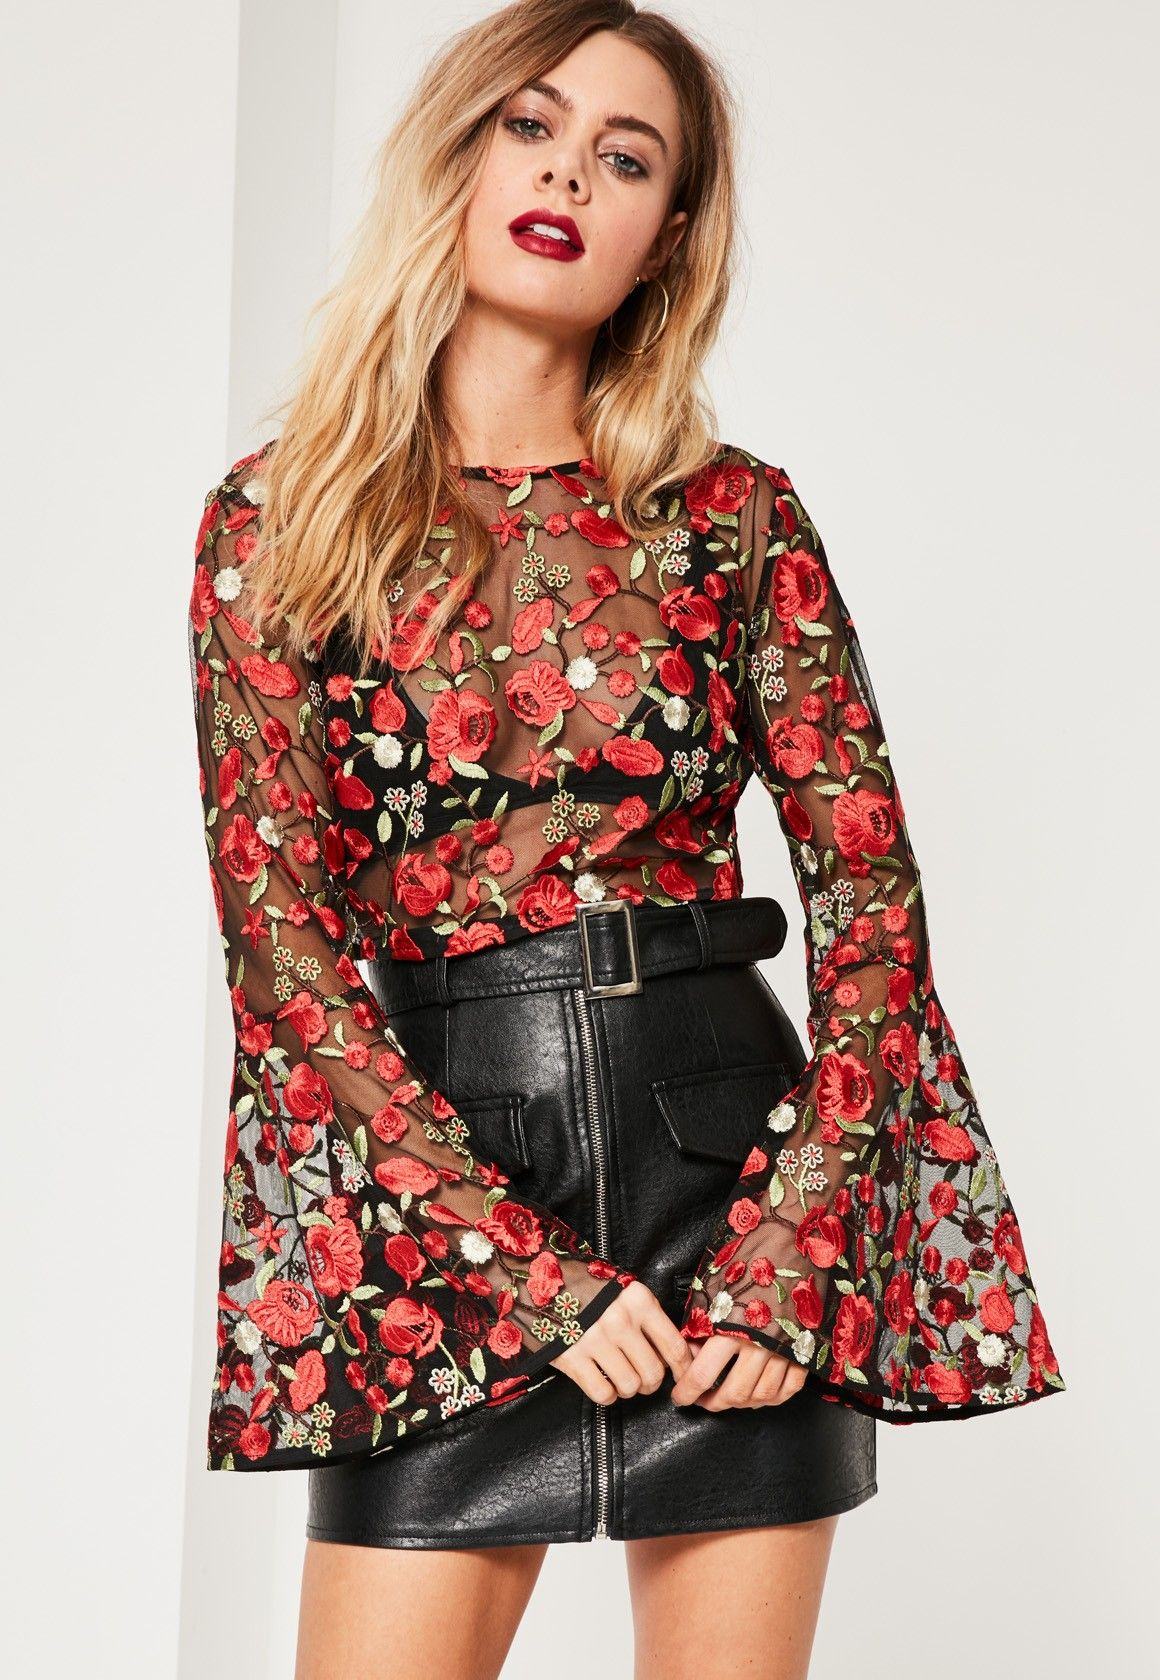 7dbedcdcf218e2 Stand out from the crowd in this fierce floral embroidered top with boho  inspired bell sleeves.